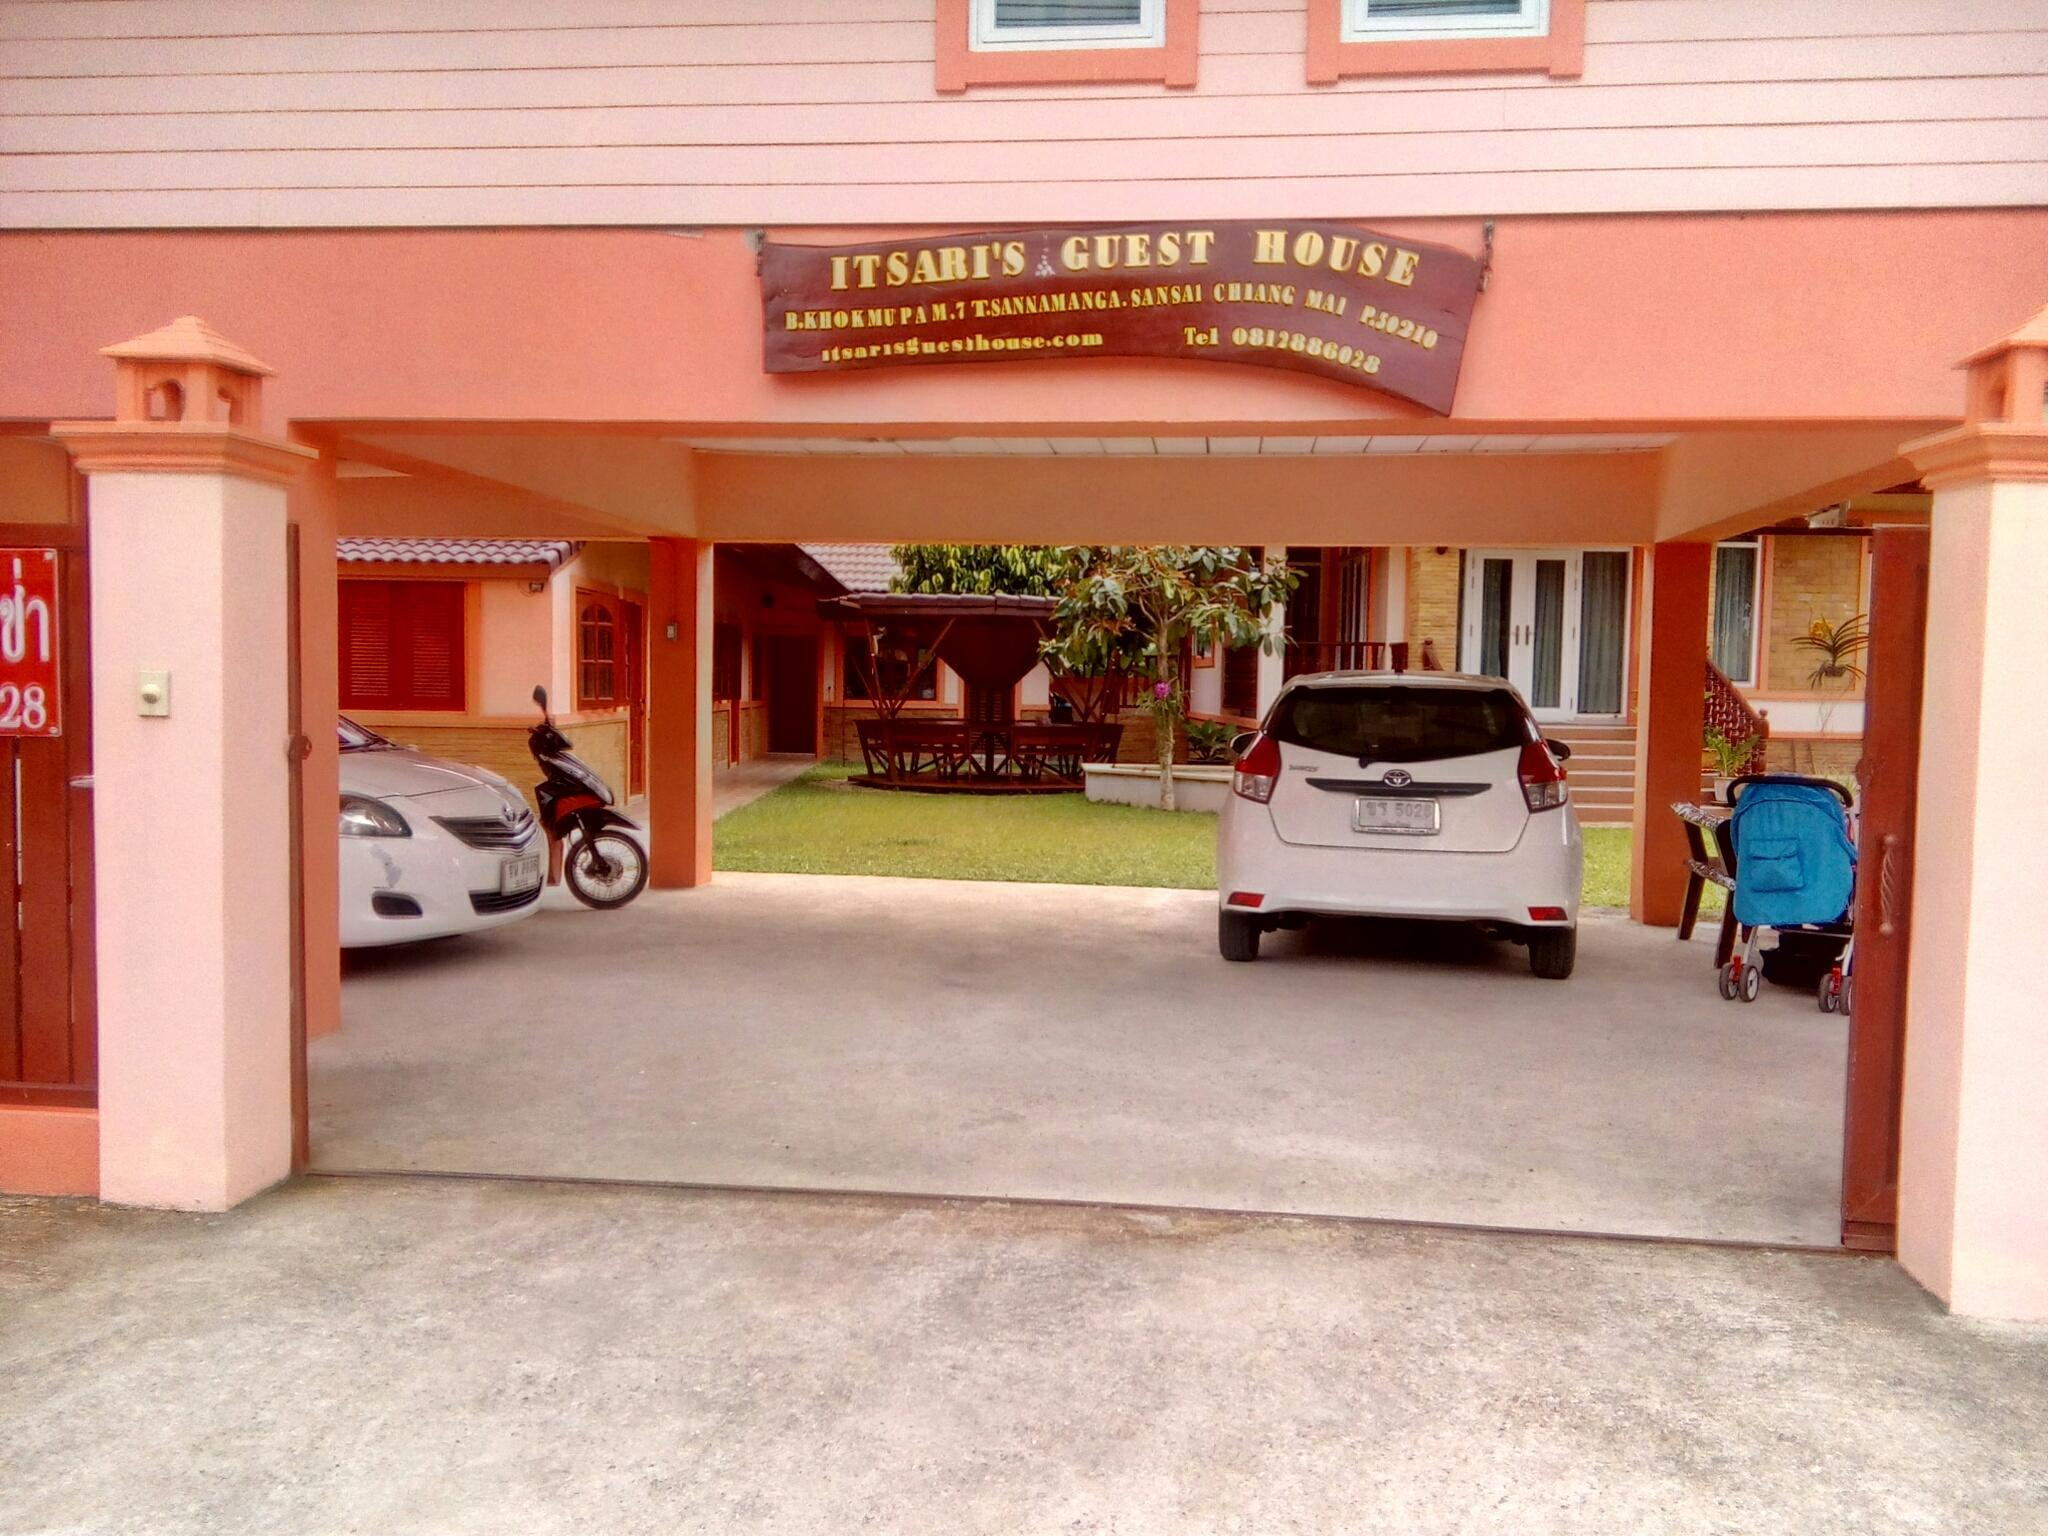 Itsaris Guest House Accommodating 9 Guests